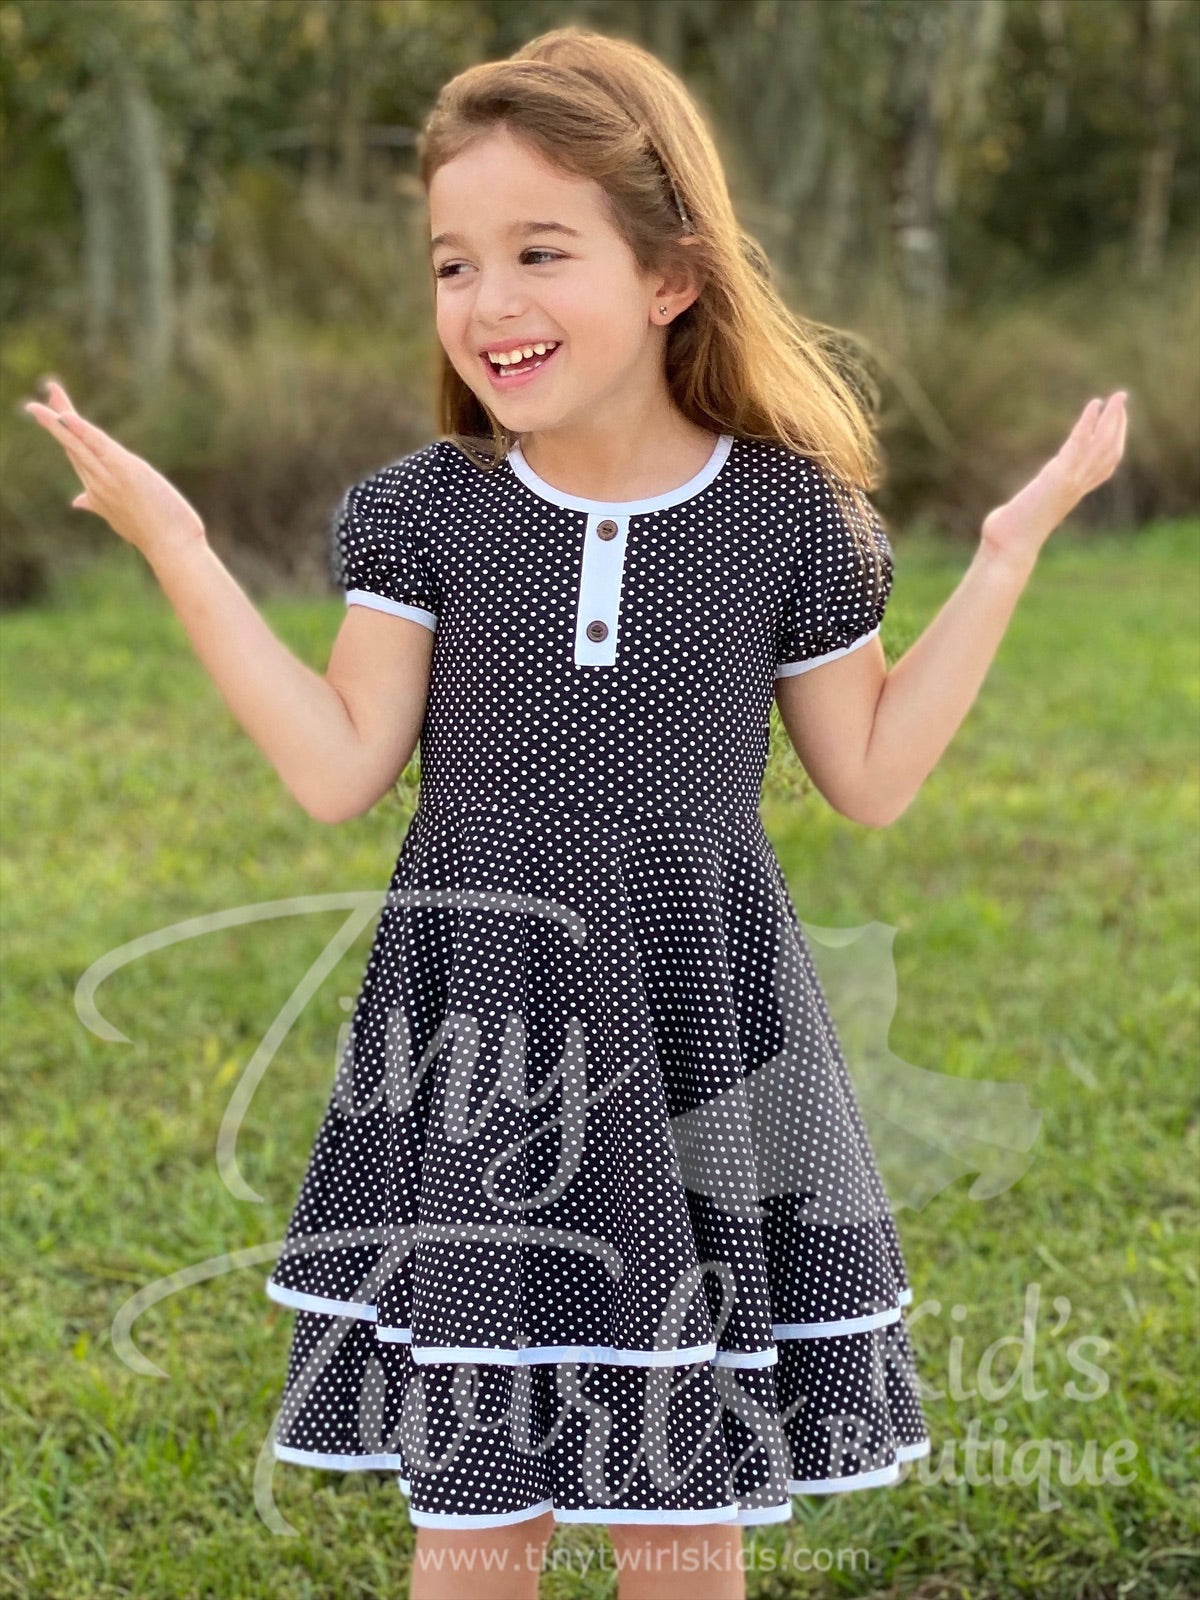 Black and White Polka Dot Double Twirl Dress - In-Stock - Tiny Twirls Kids Boutique